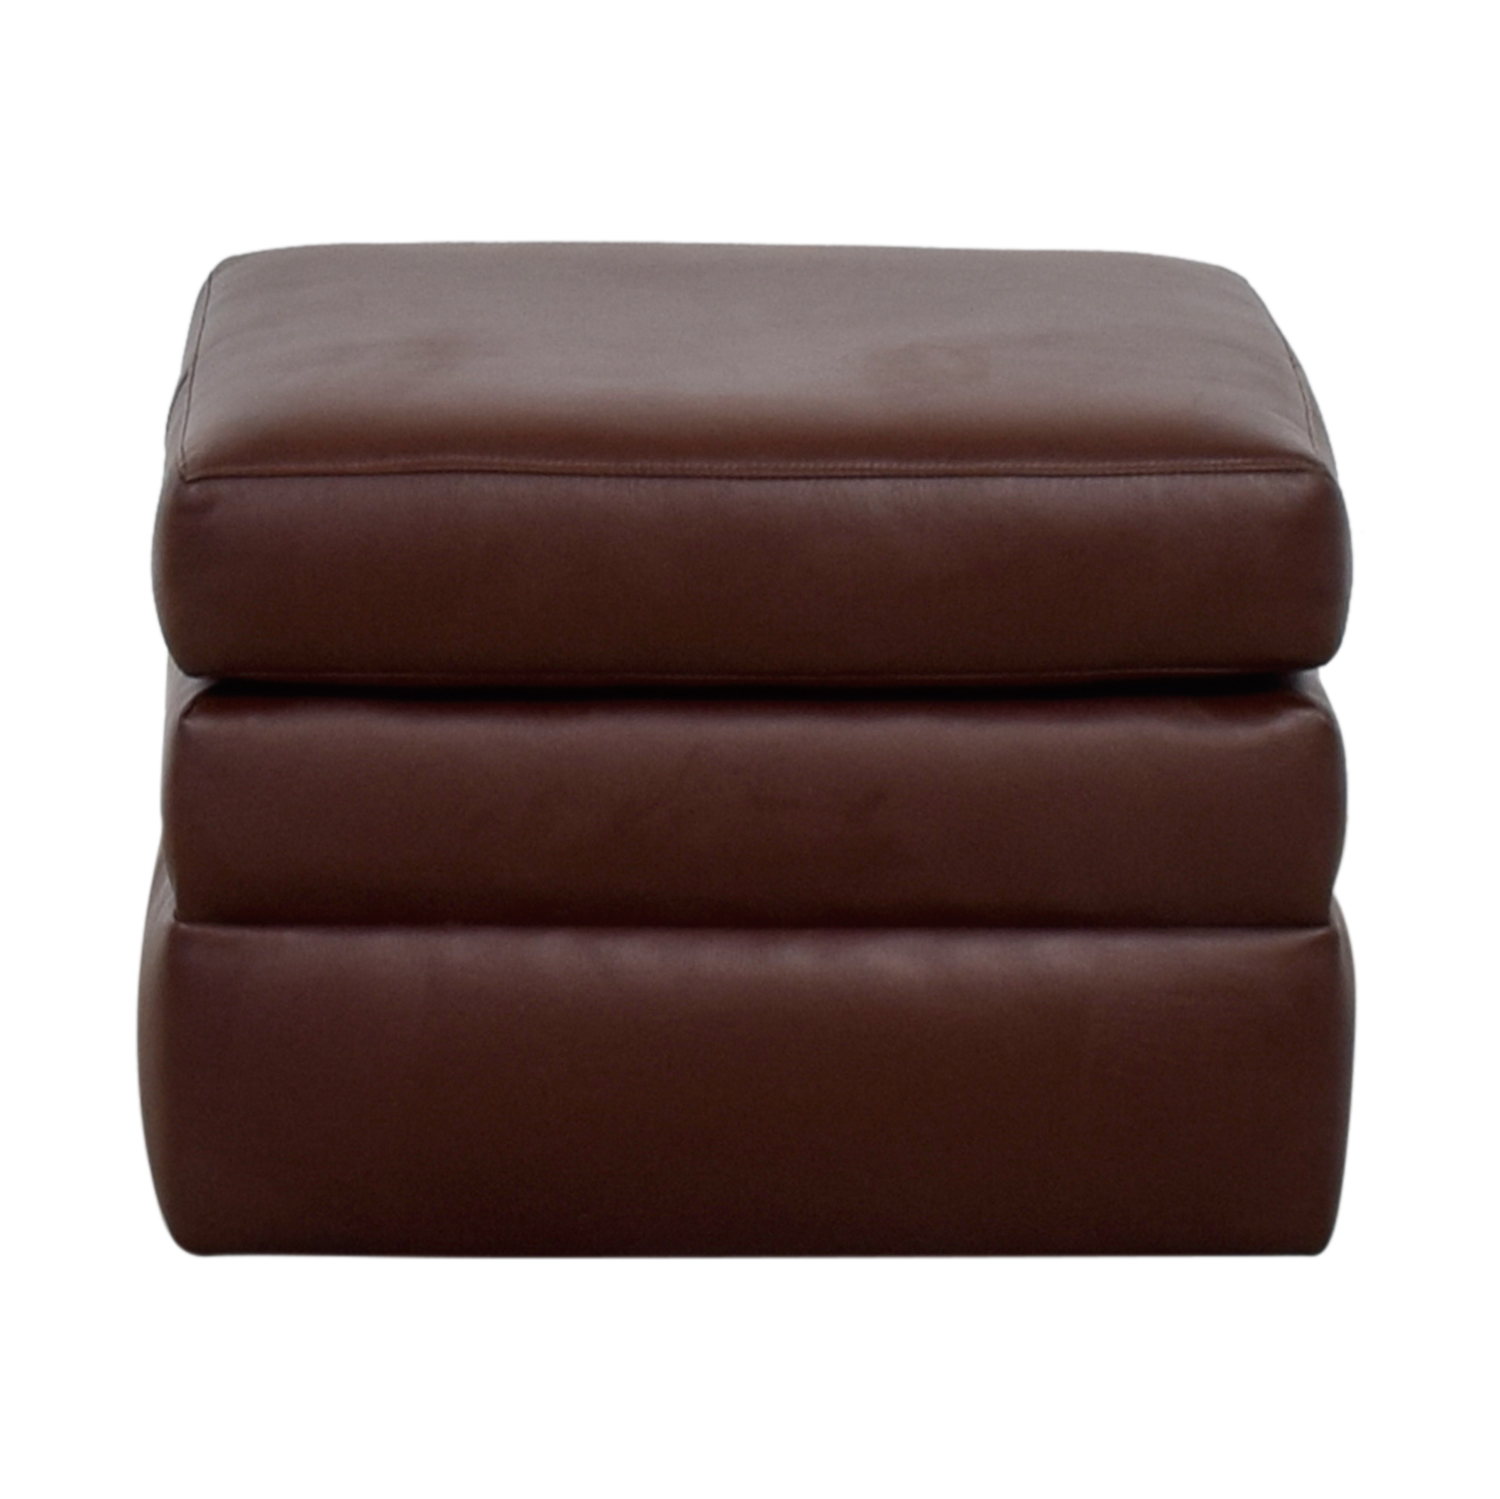 Custom Made Faux Leather Ottoman discount